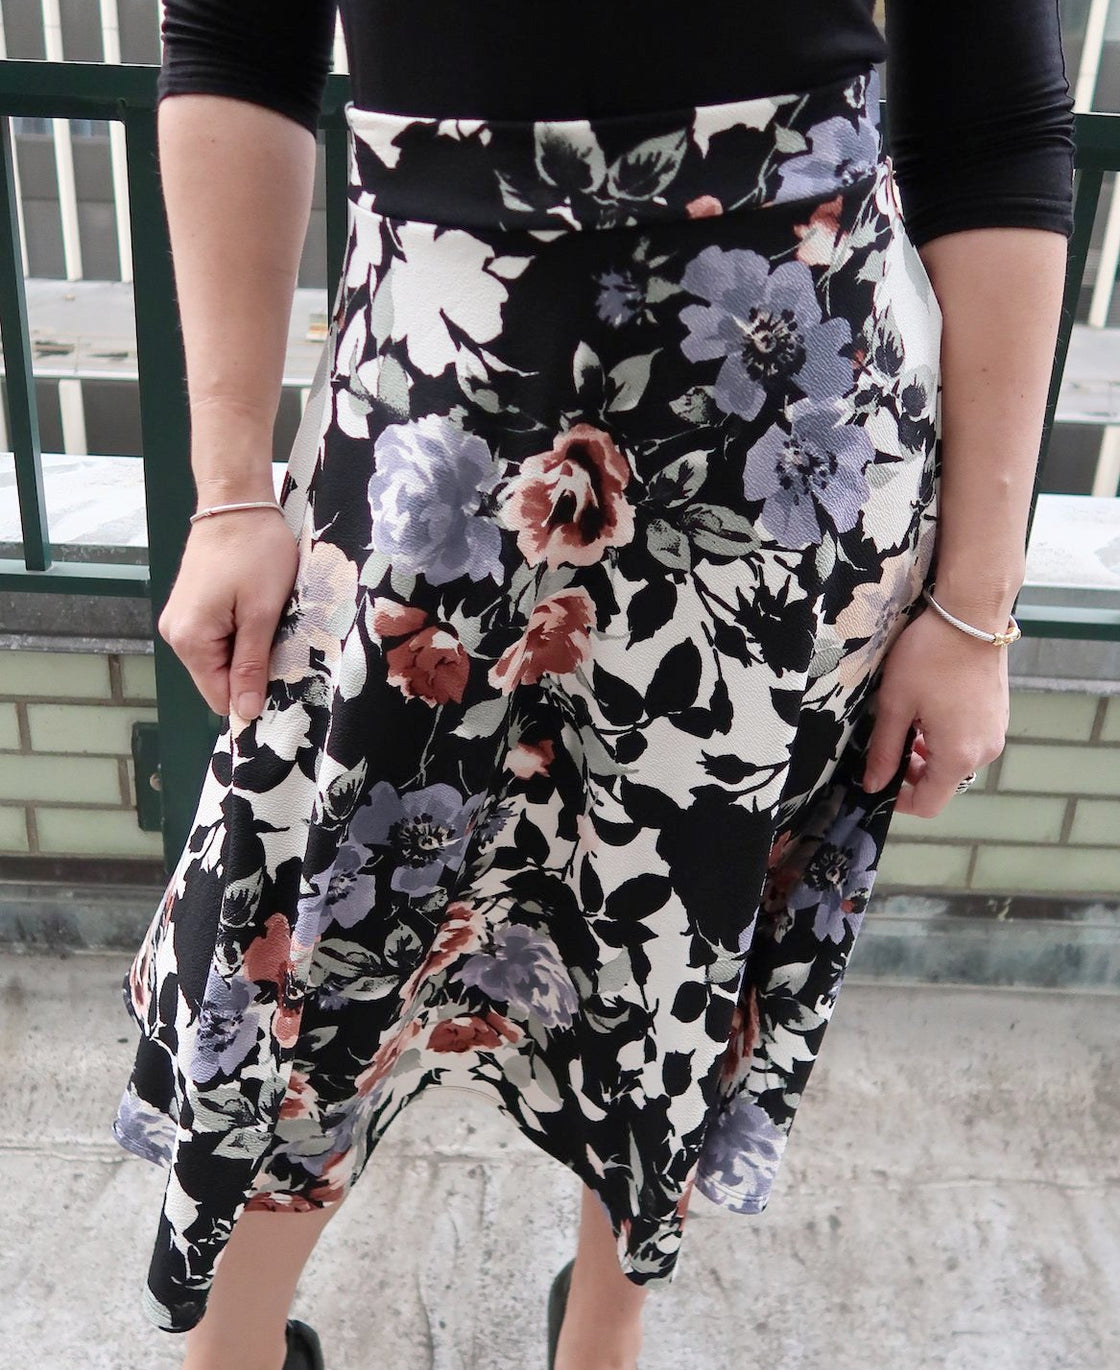 A-Line Tea Length Swing Skirt